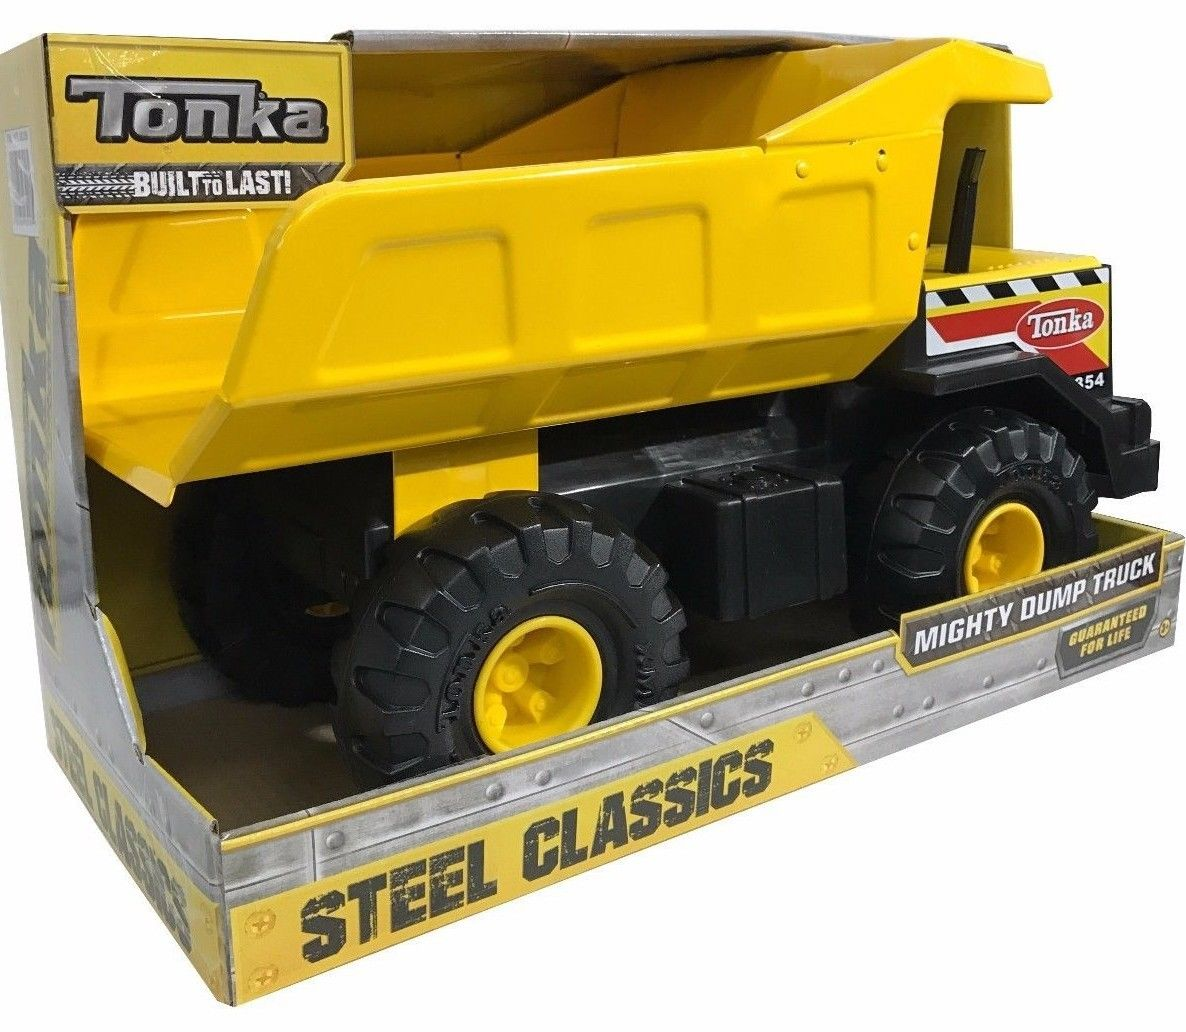 Tonka Steel Classics Mighty Dump Truck - Built to Last!